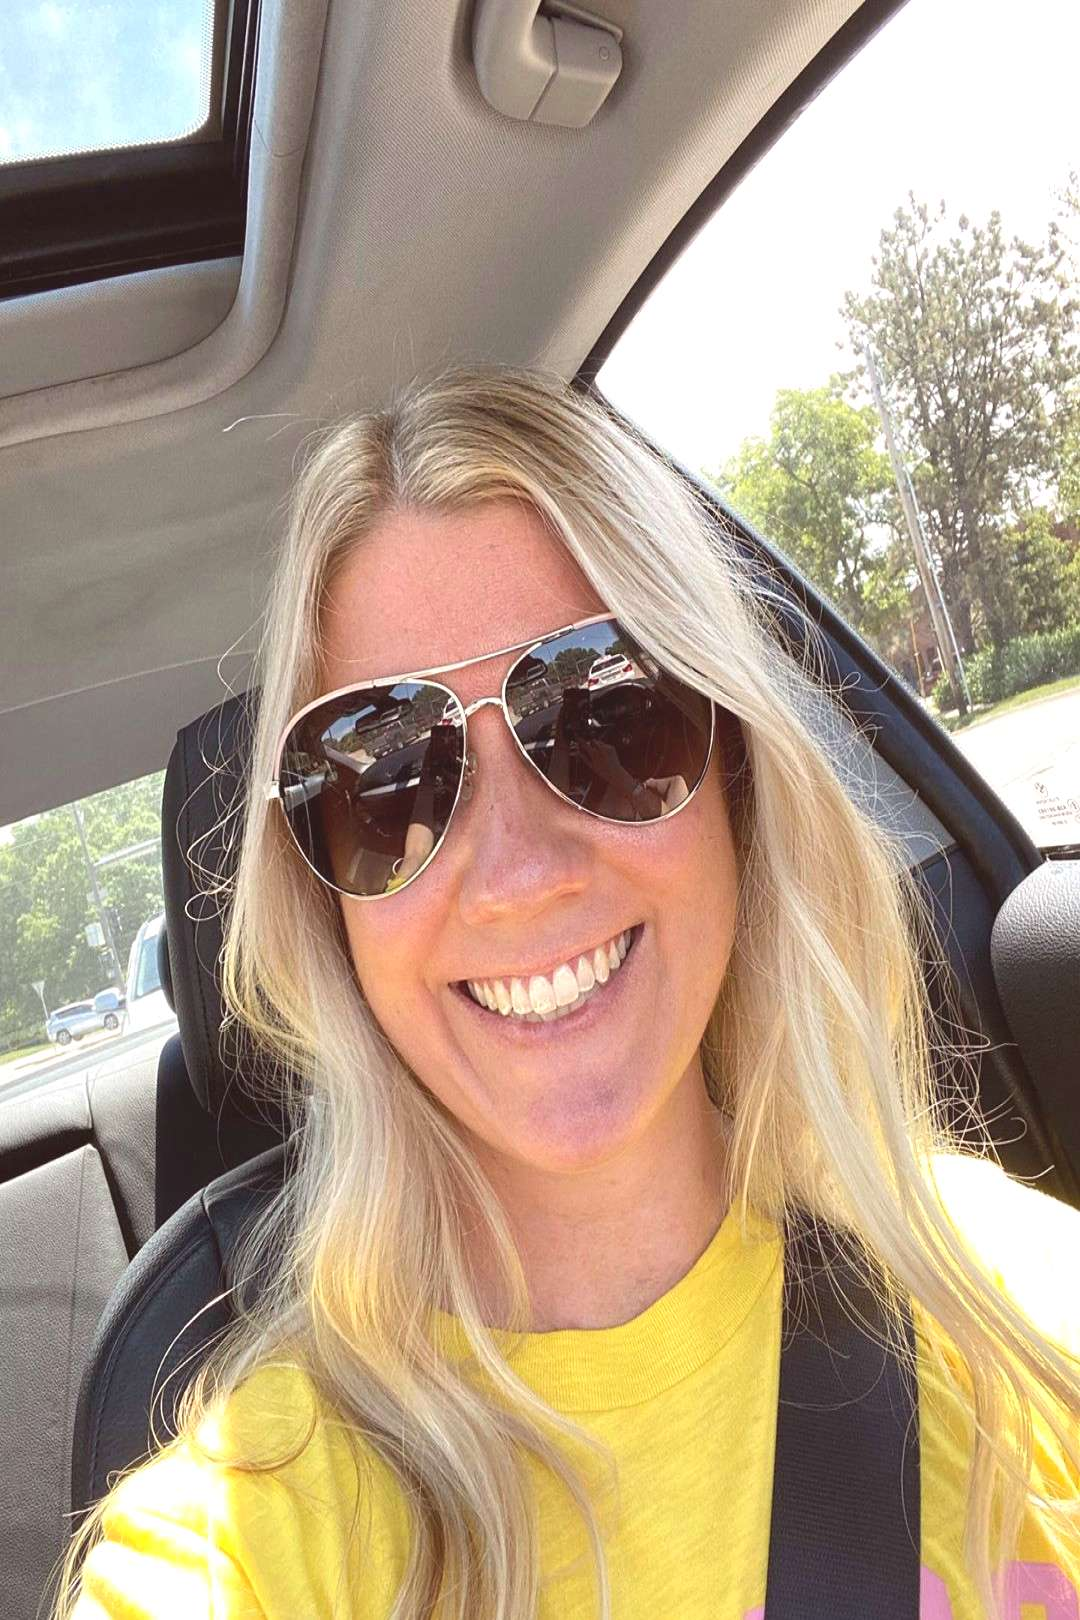 Katie Mehan on June 06 2020 and ks 1 person sunglasses selfie clo